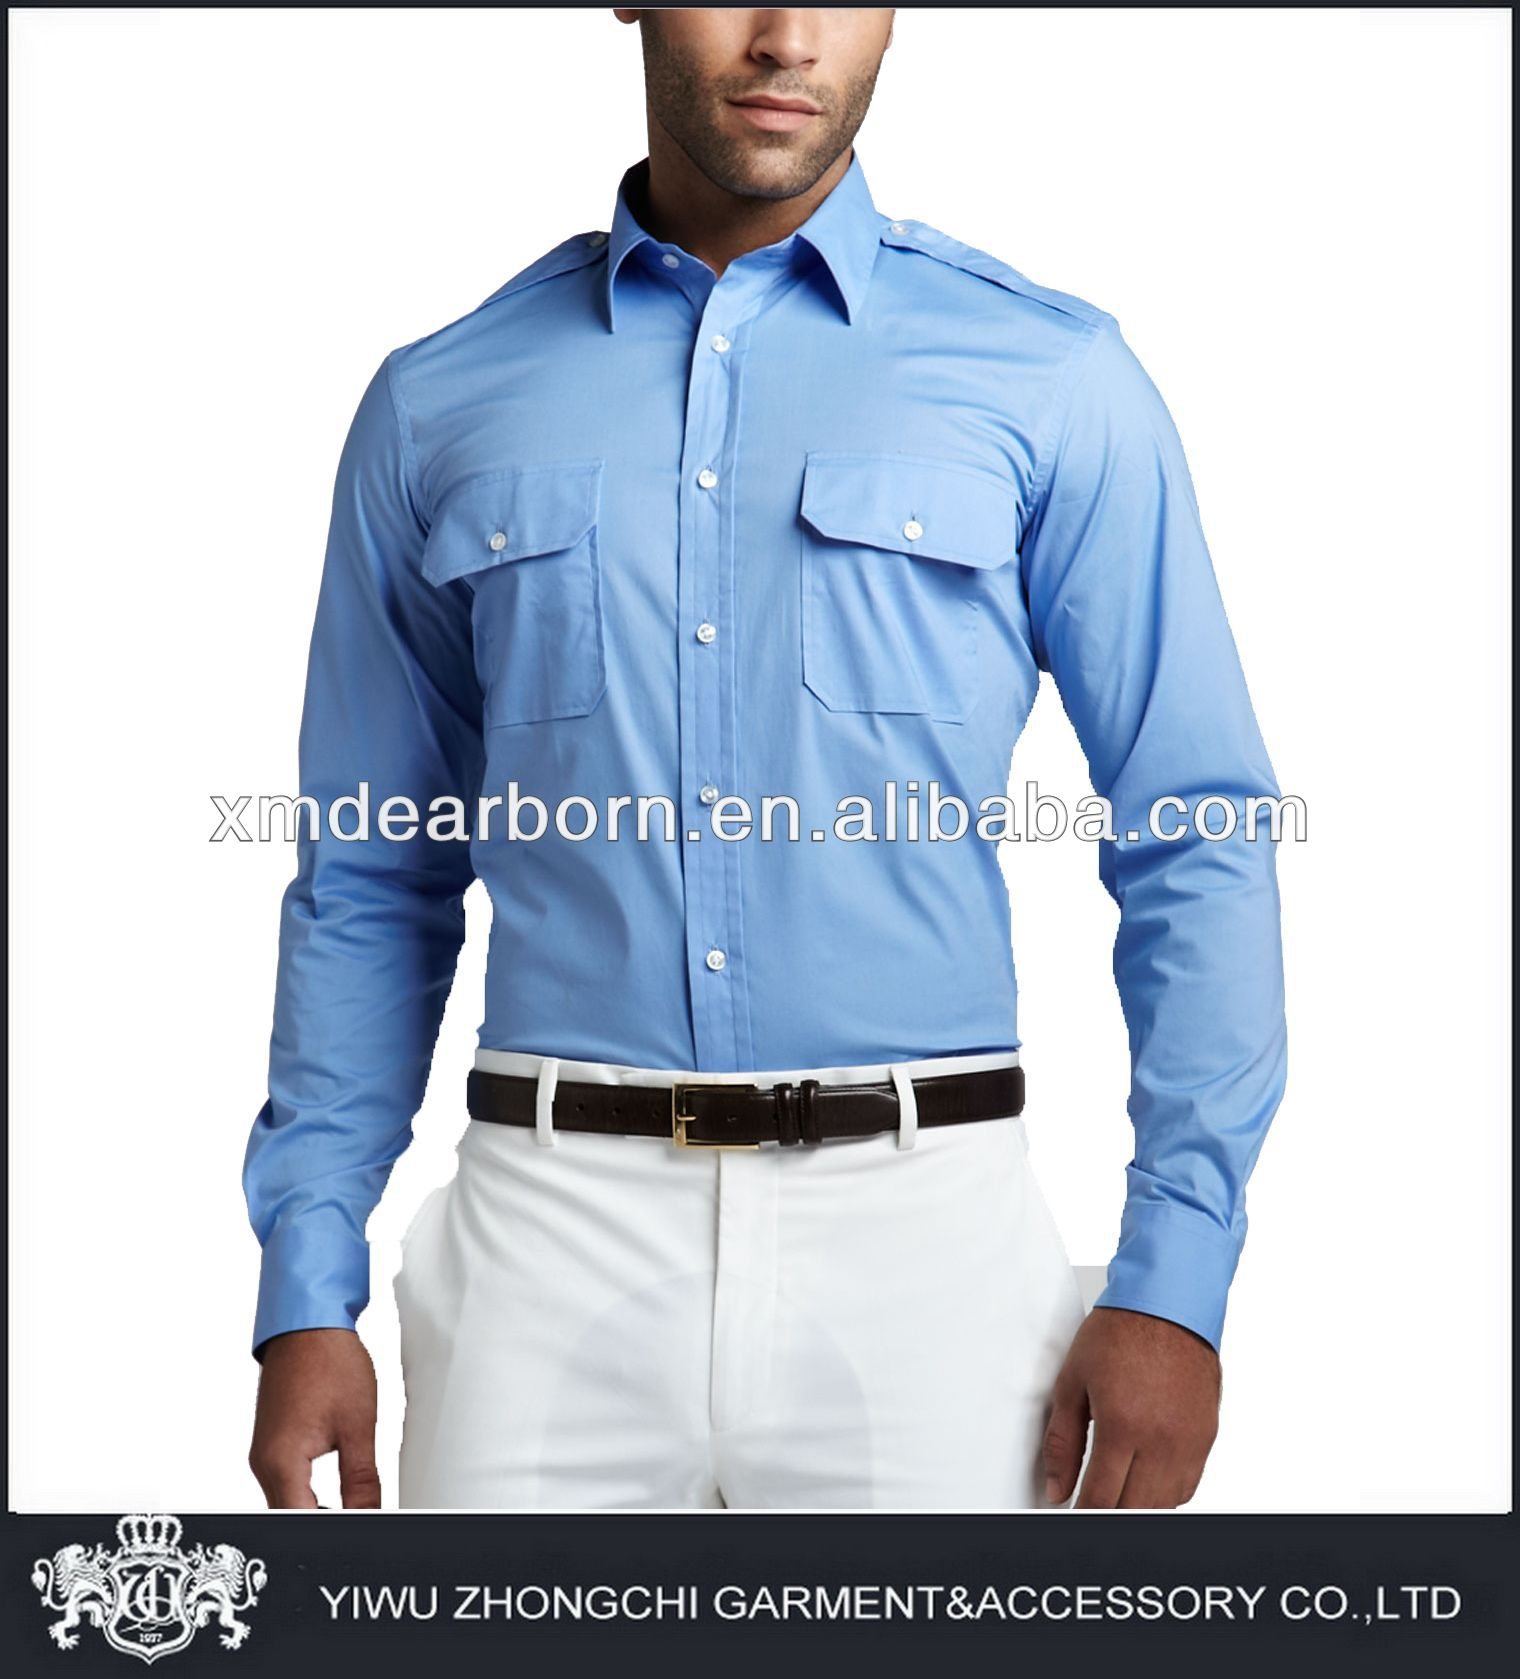 mens uniform shirts with epaulets buy uniform shirts